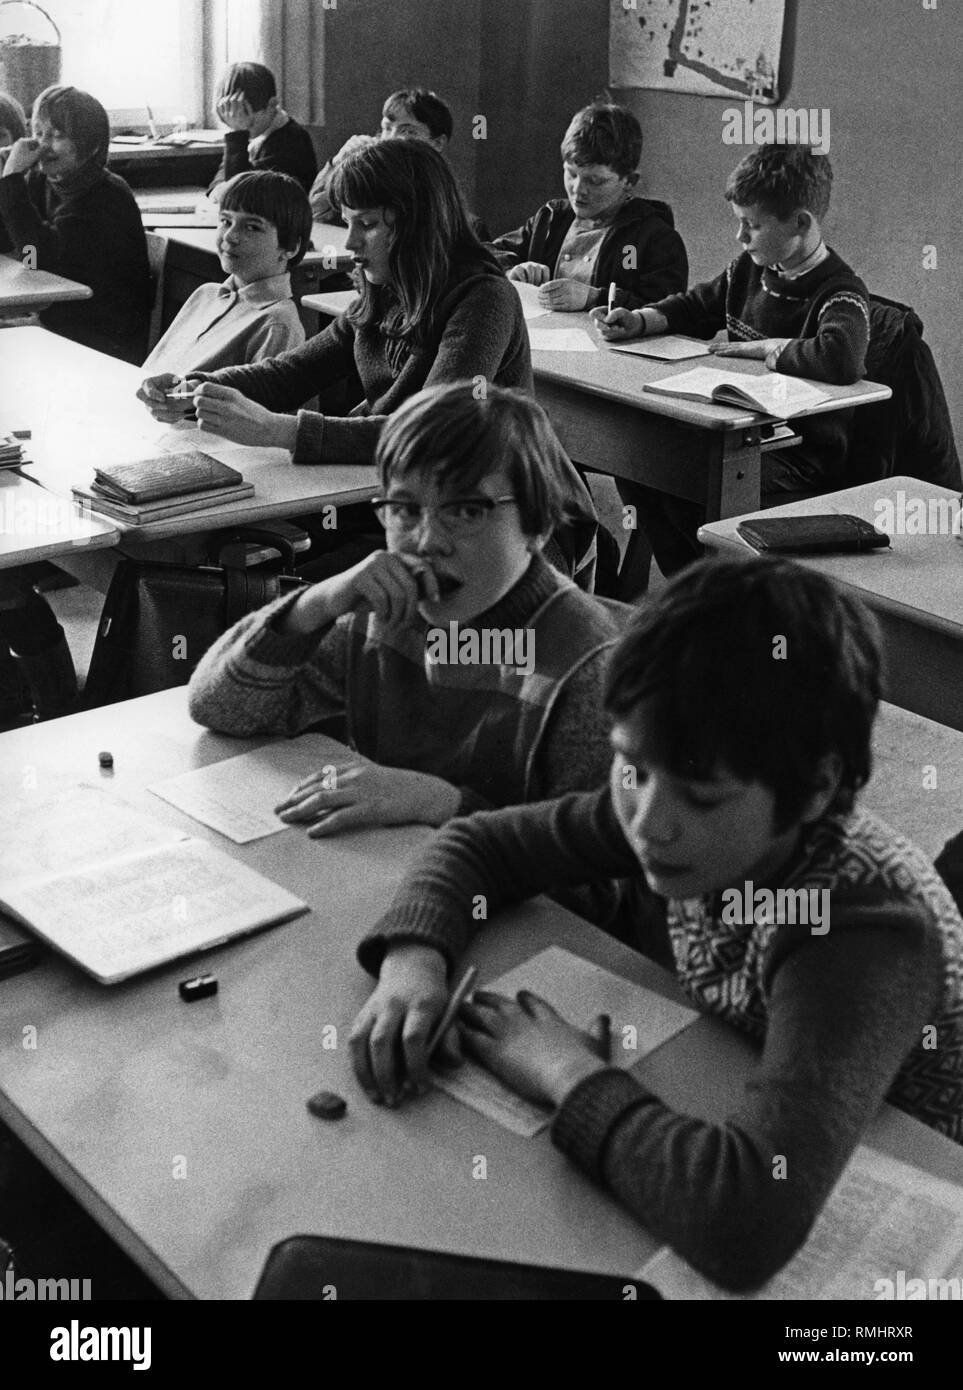 Children in school: Picture shows children of the Hauptschule (Secondary modern school) during a lesson. - Stock Image